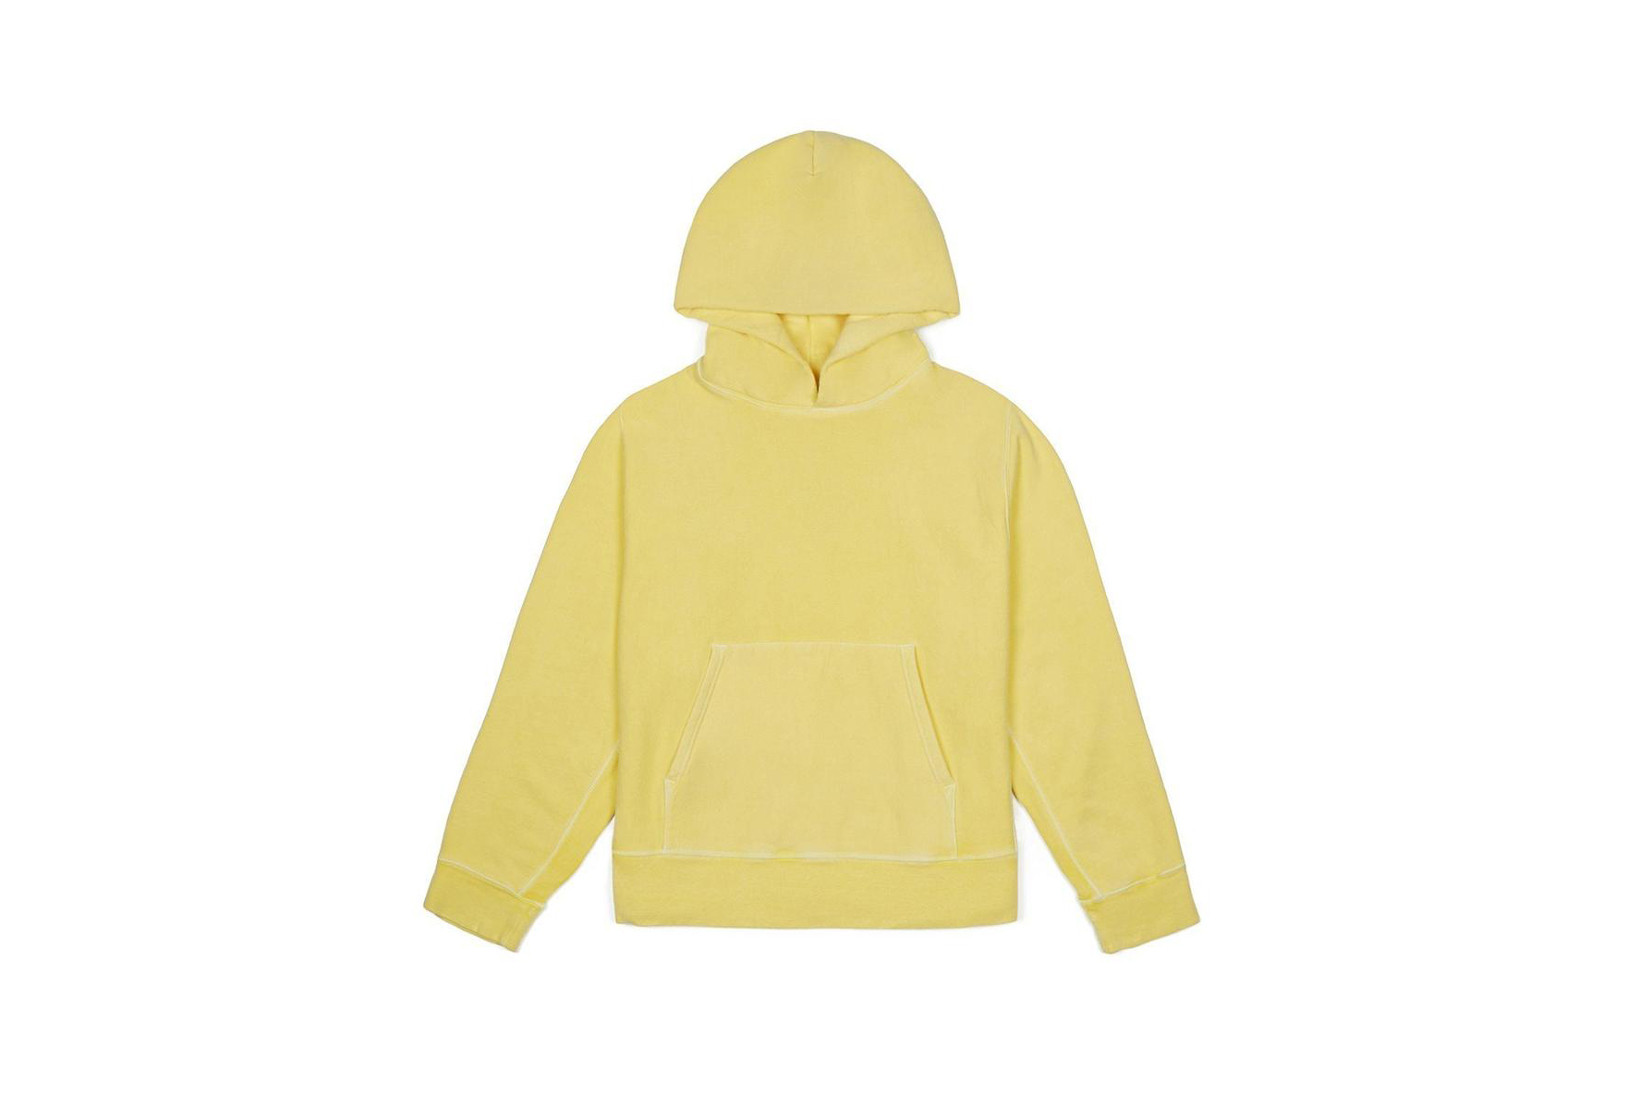 YEEZY Hoodies On Sale at Discounted